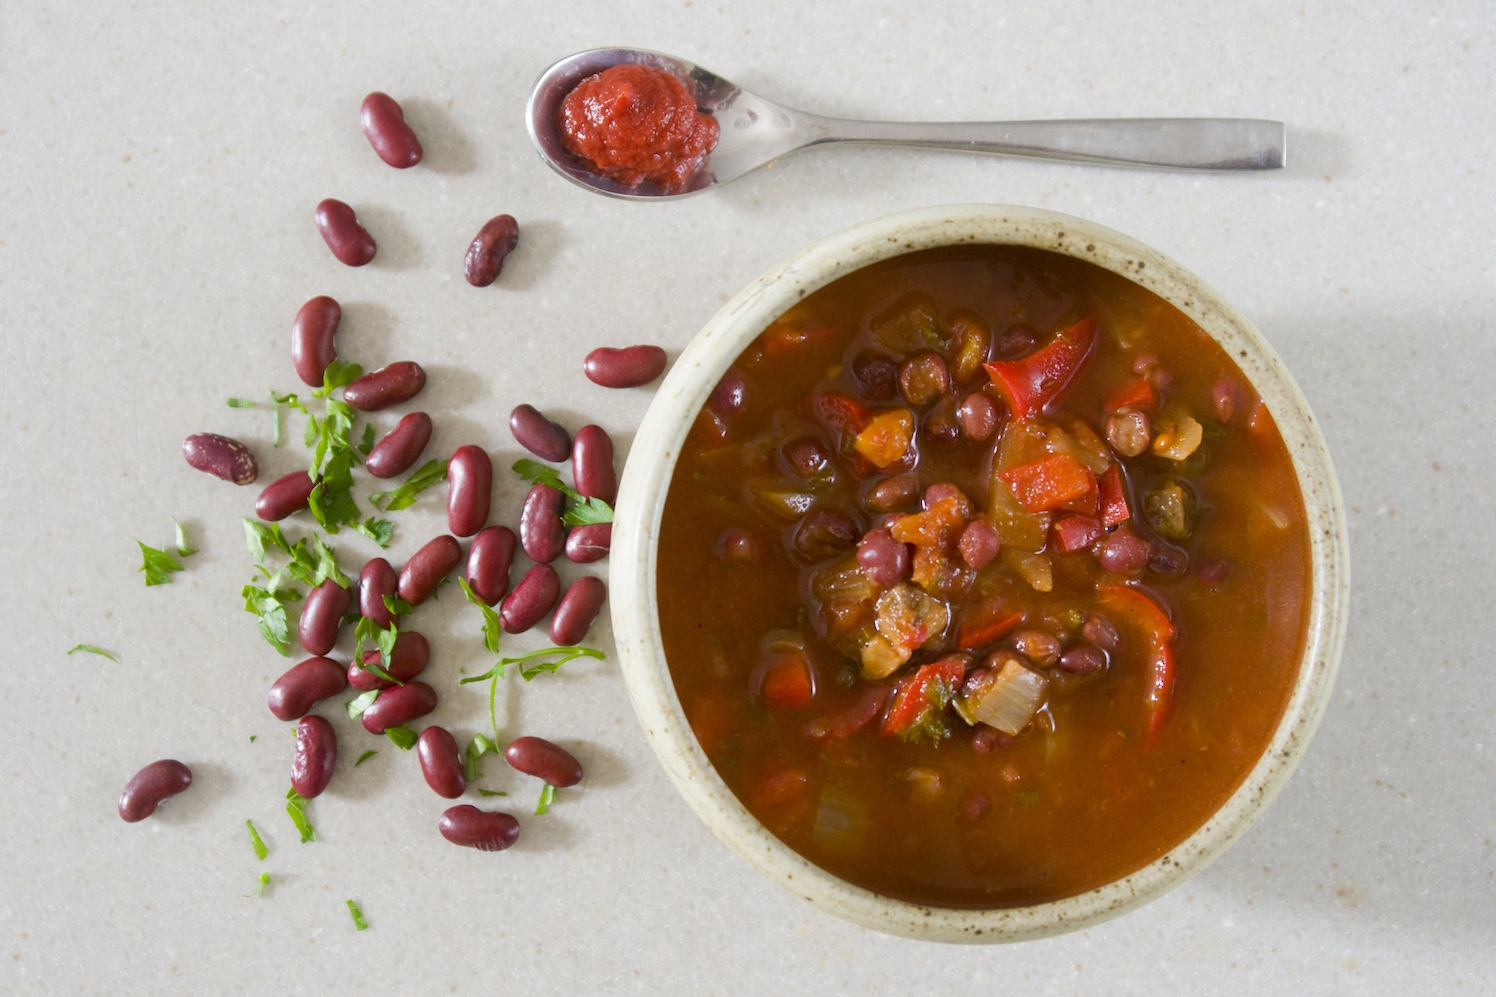 adzuki bean soup with red pepper and mushrooms -